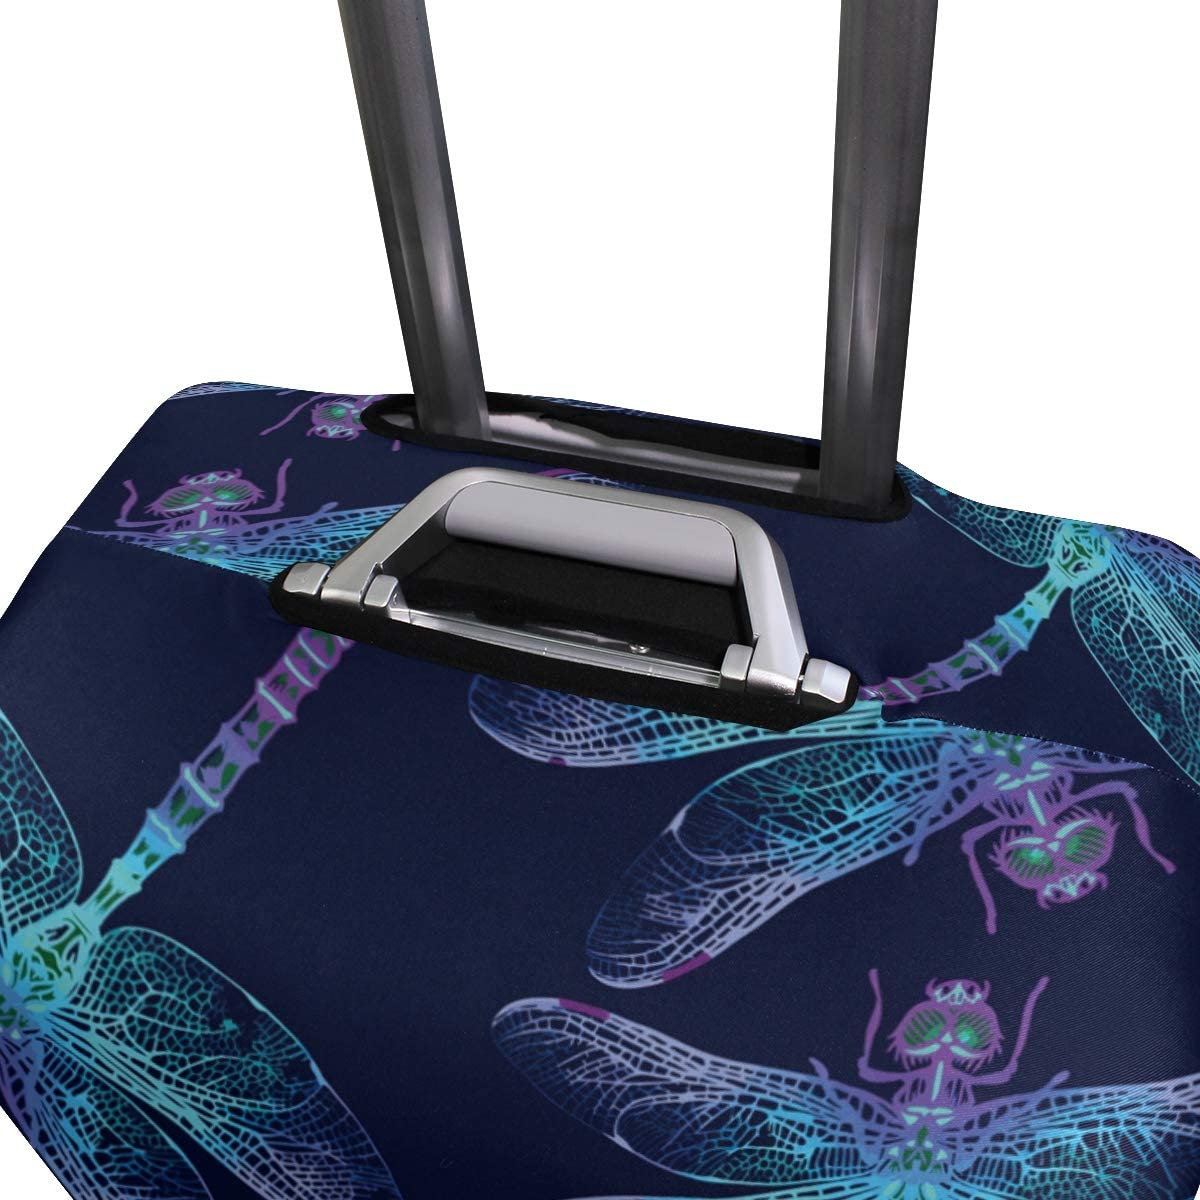 Dragonflies Pattern Travel Luggage Cover Stretchable Polyester Suitcase Protector Fits 18-20 Inches Luggage